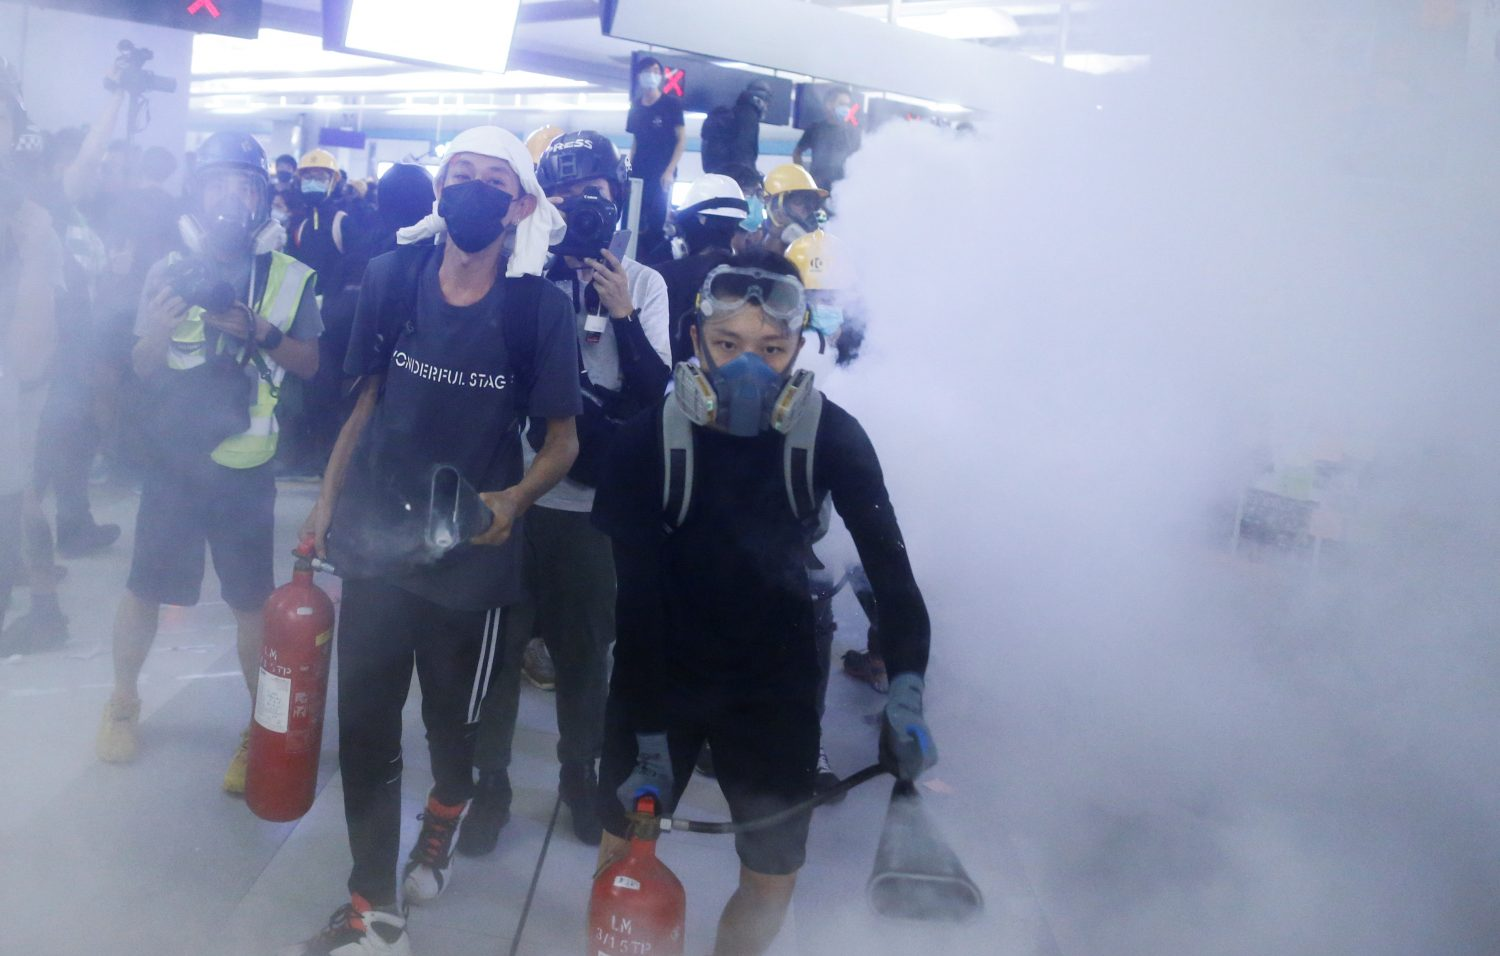 Protesters fire nitrogen extinguishers during a stand off at Yuen Long MTR station, the scene of an attack by suspected triad gang members a month ago, in Yuen Long, New Territories, Hong Kong, China August 21, 2019. REUTERS/Thomas Peter